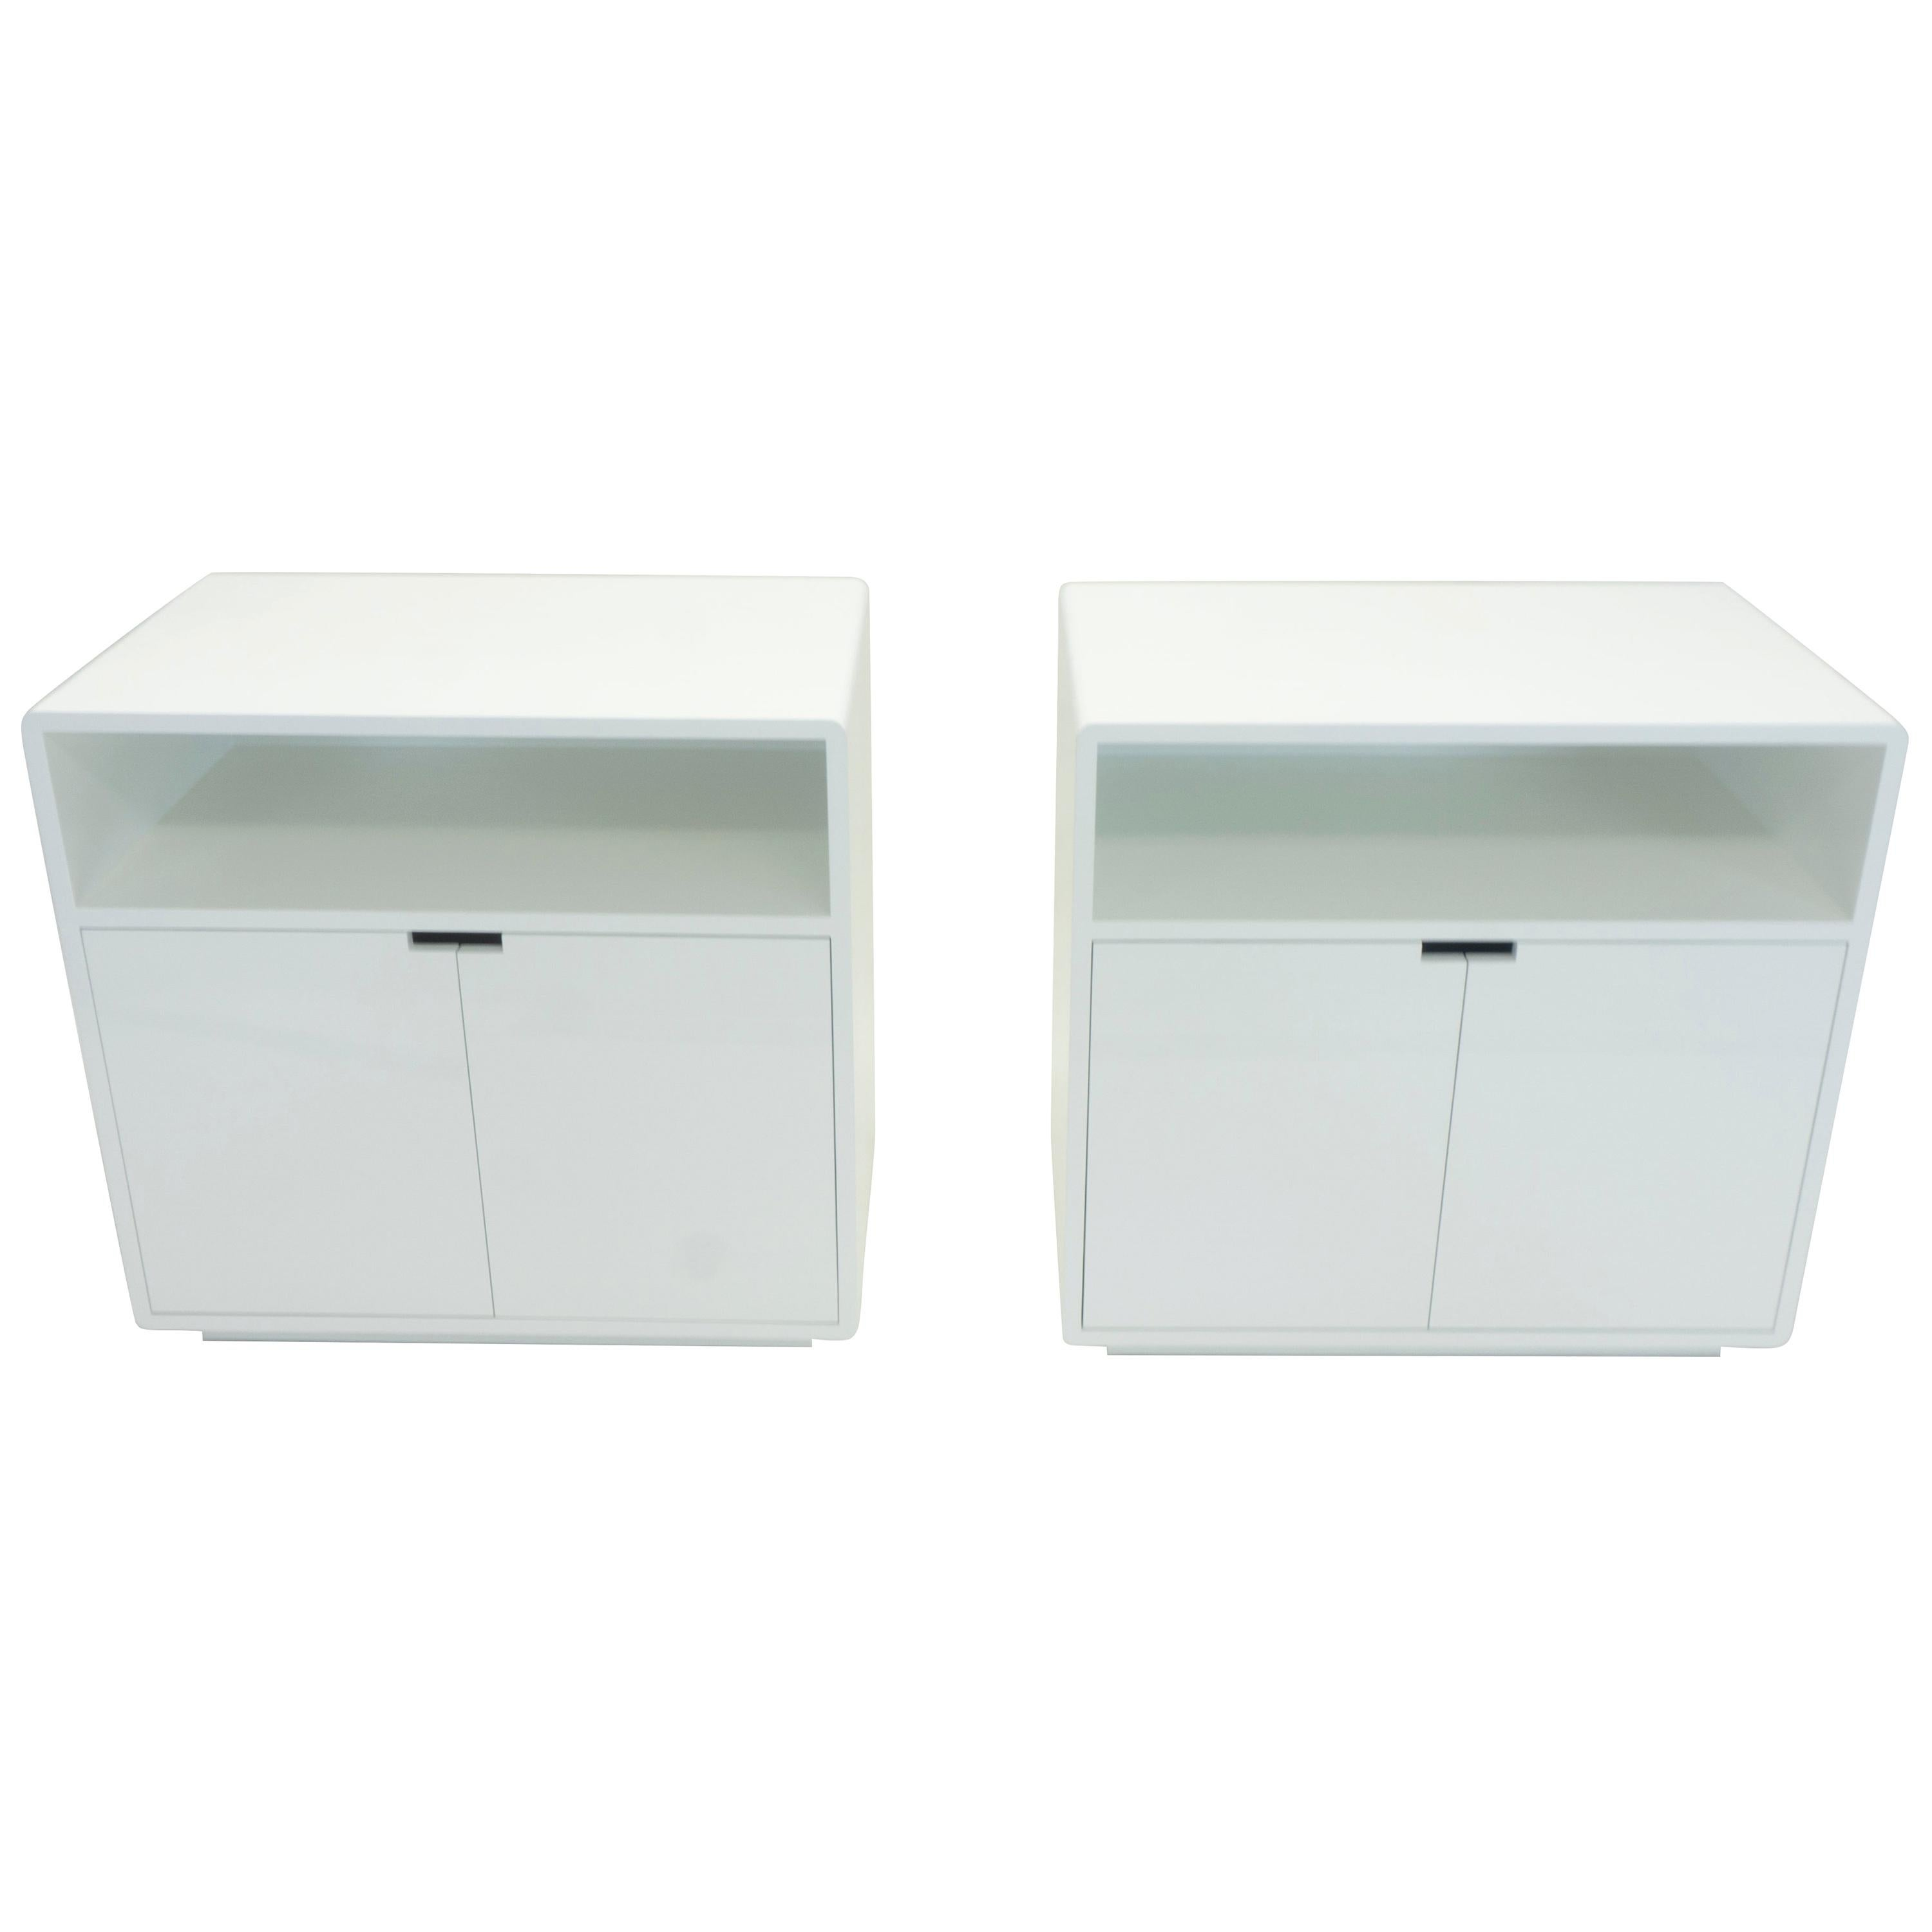 Modern Bedside Tables with Storage